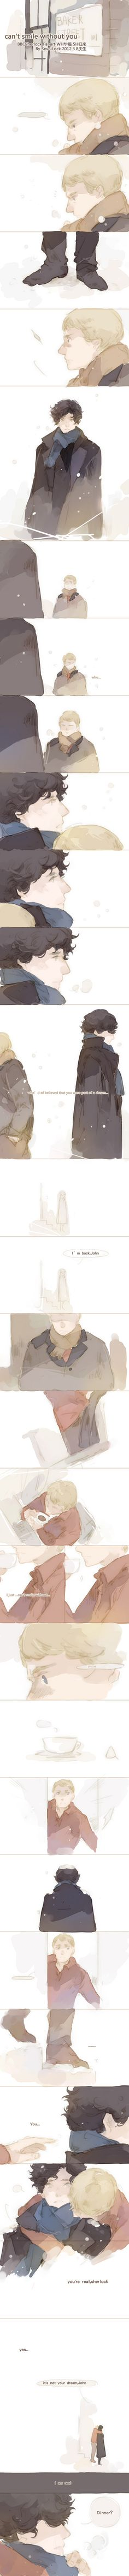 A Johnlock comic strip...ahhh this is so cute I can't... Art by Bloody Rabbit